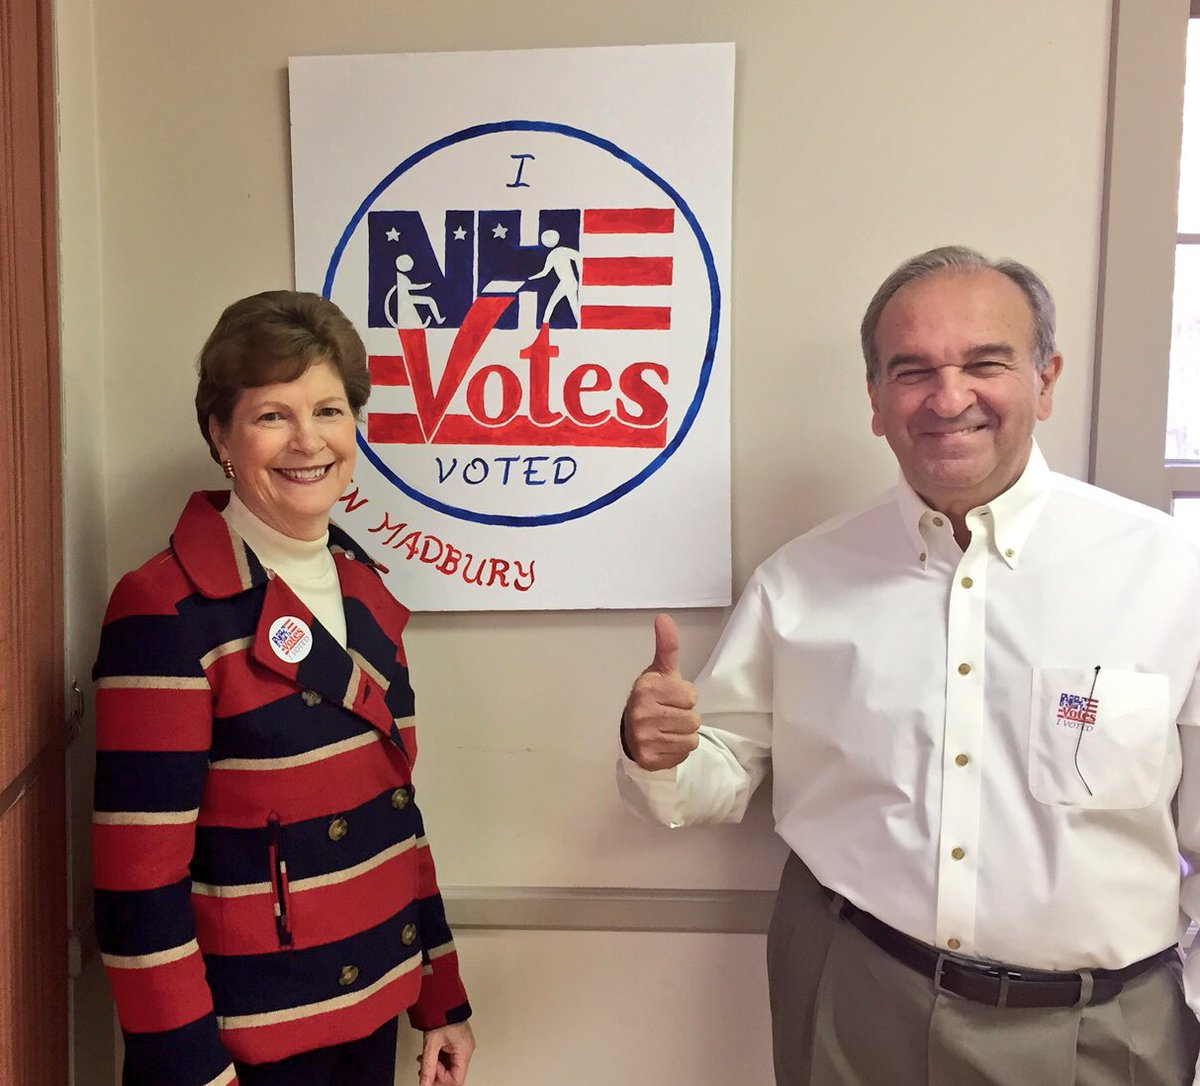 We just voted to elect the 1st woman to be our President. Let me tell you, it feels amazing! #nhpolitics